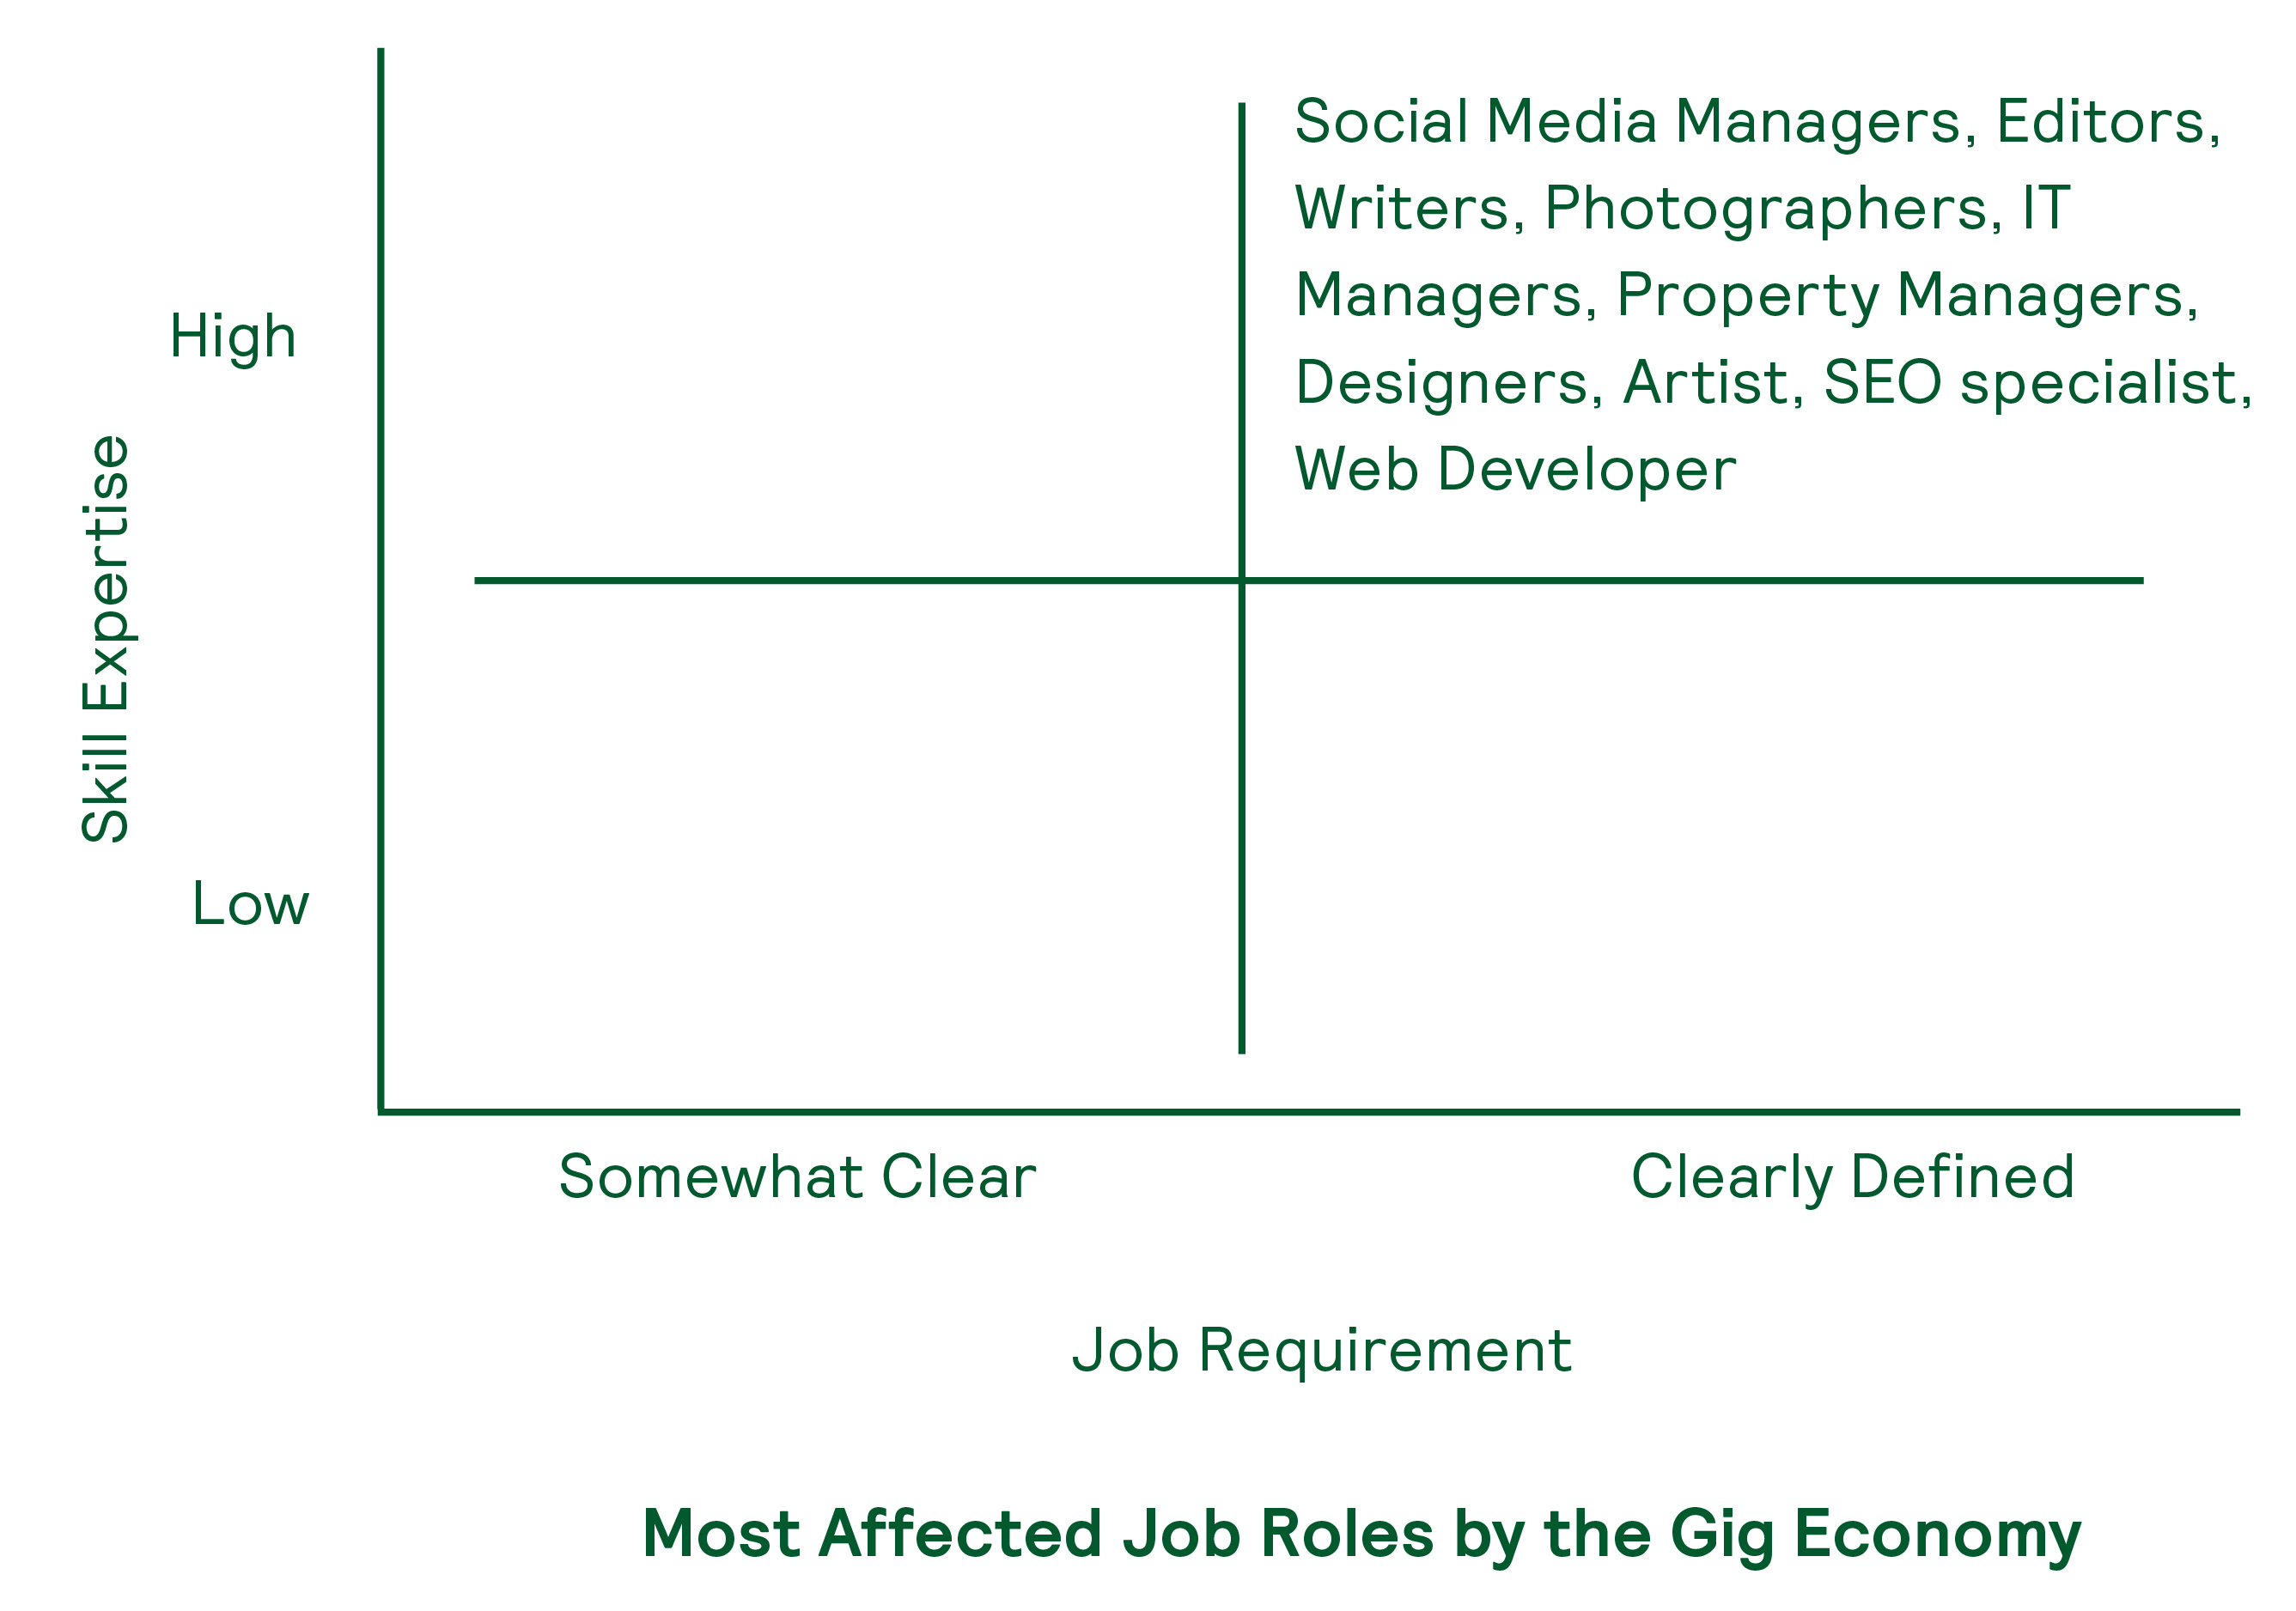 most_affected_job_roles_by_the_gig_economy_how_are_organizations_gearing_up_for_the_gig_economy